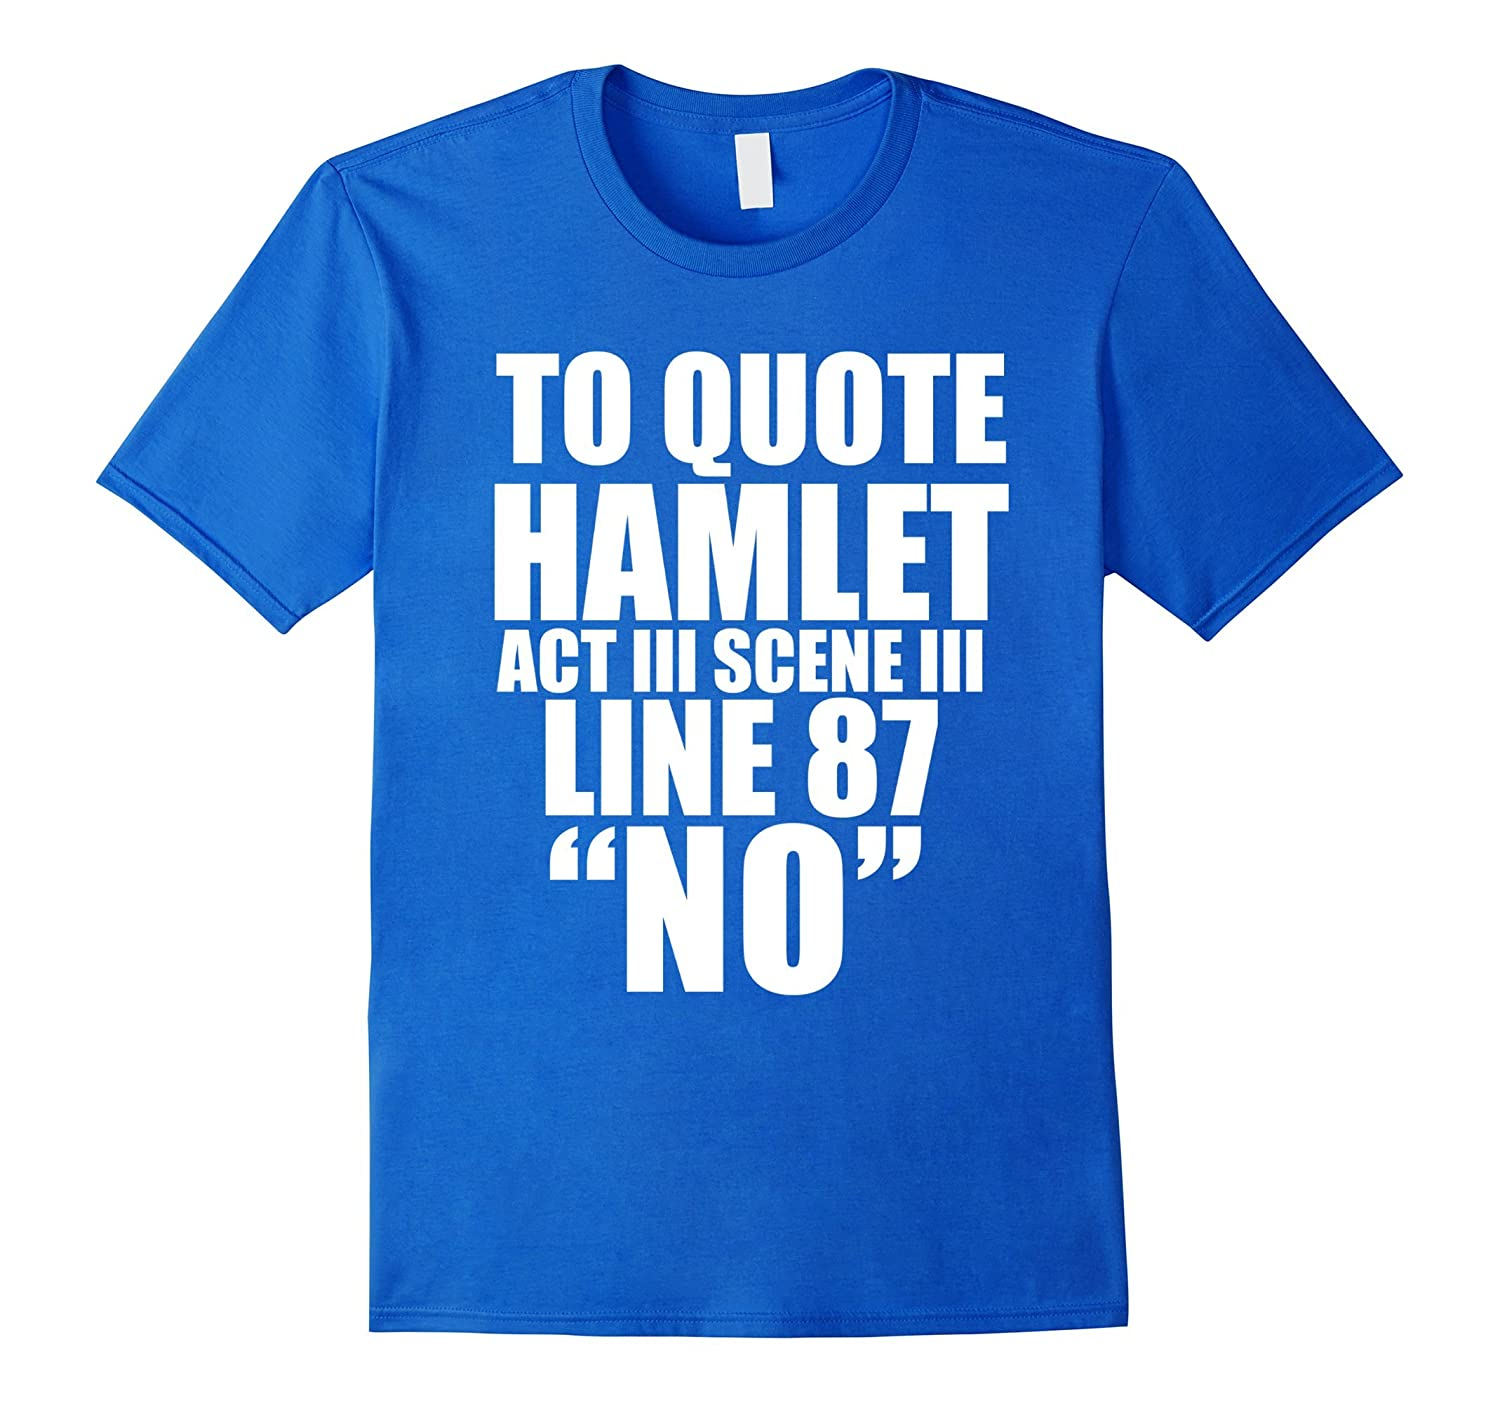 the summary of act 3 in hamlet by william shakespeare Free summary and analysis of act iii, scene ii in william shakespeare's hamlet that won't make you snore we promise.